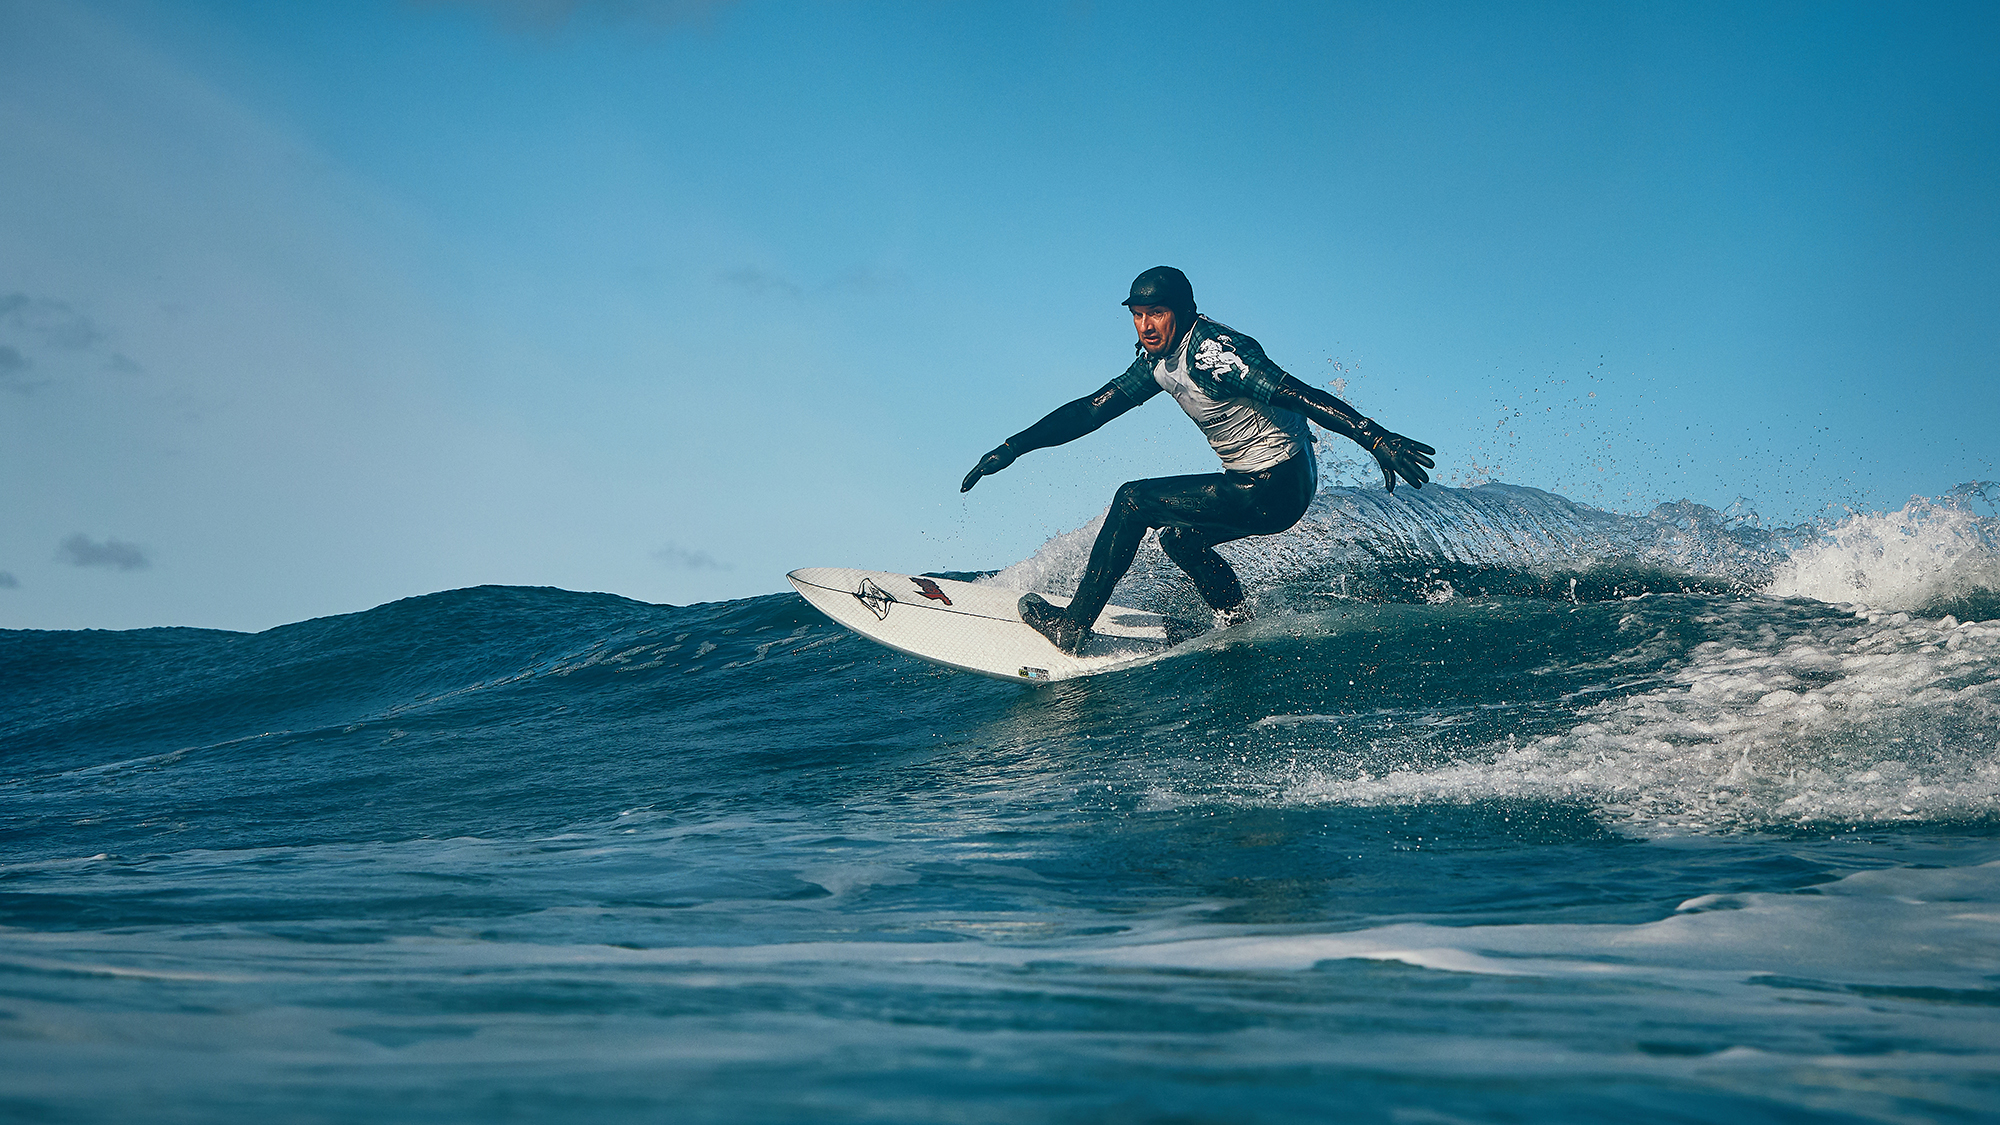 Craig Sutherland, 2018 Masters Champion, is pictured catching a wave.